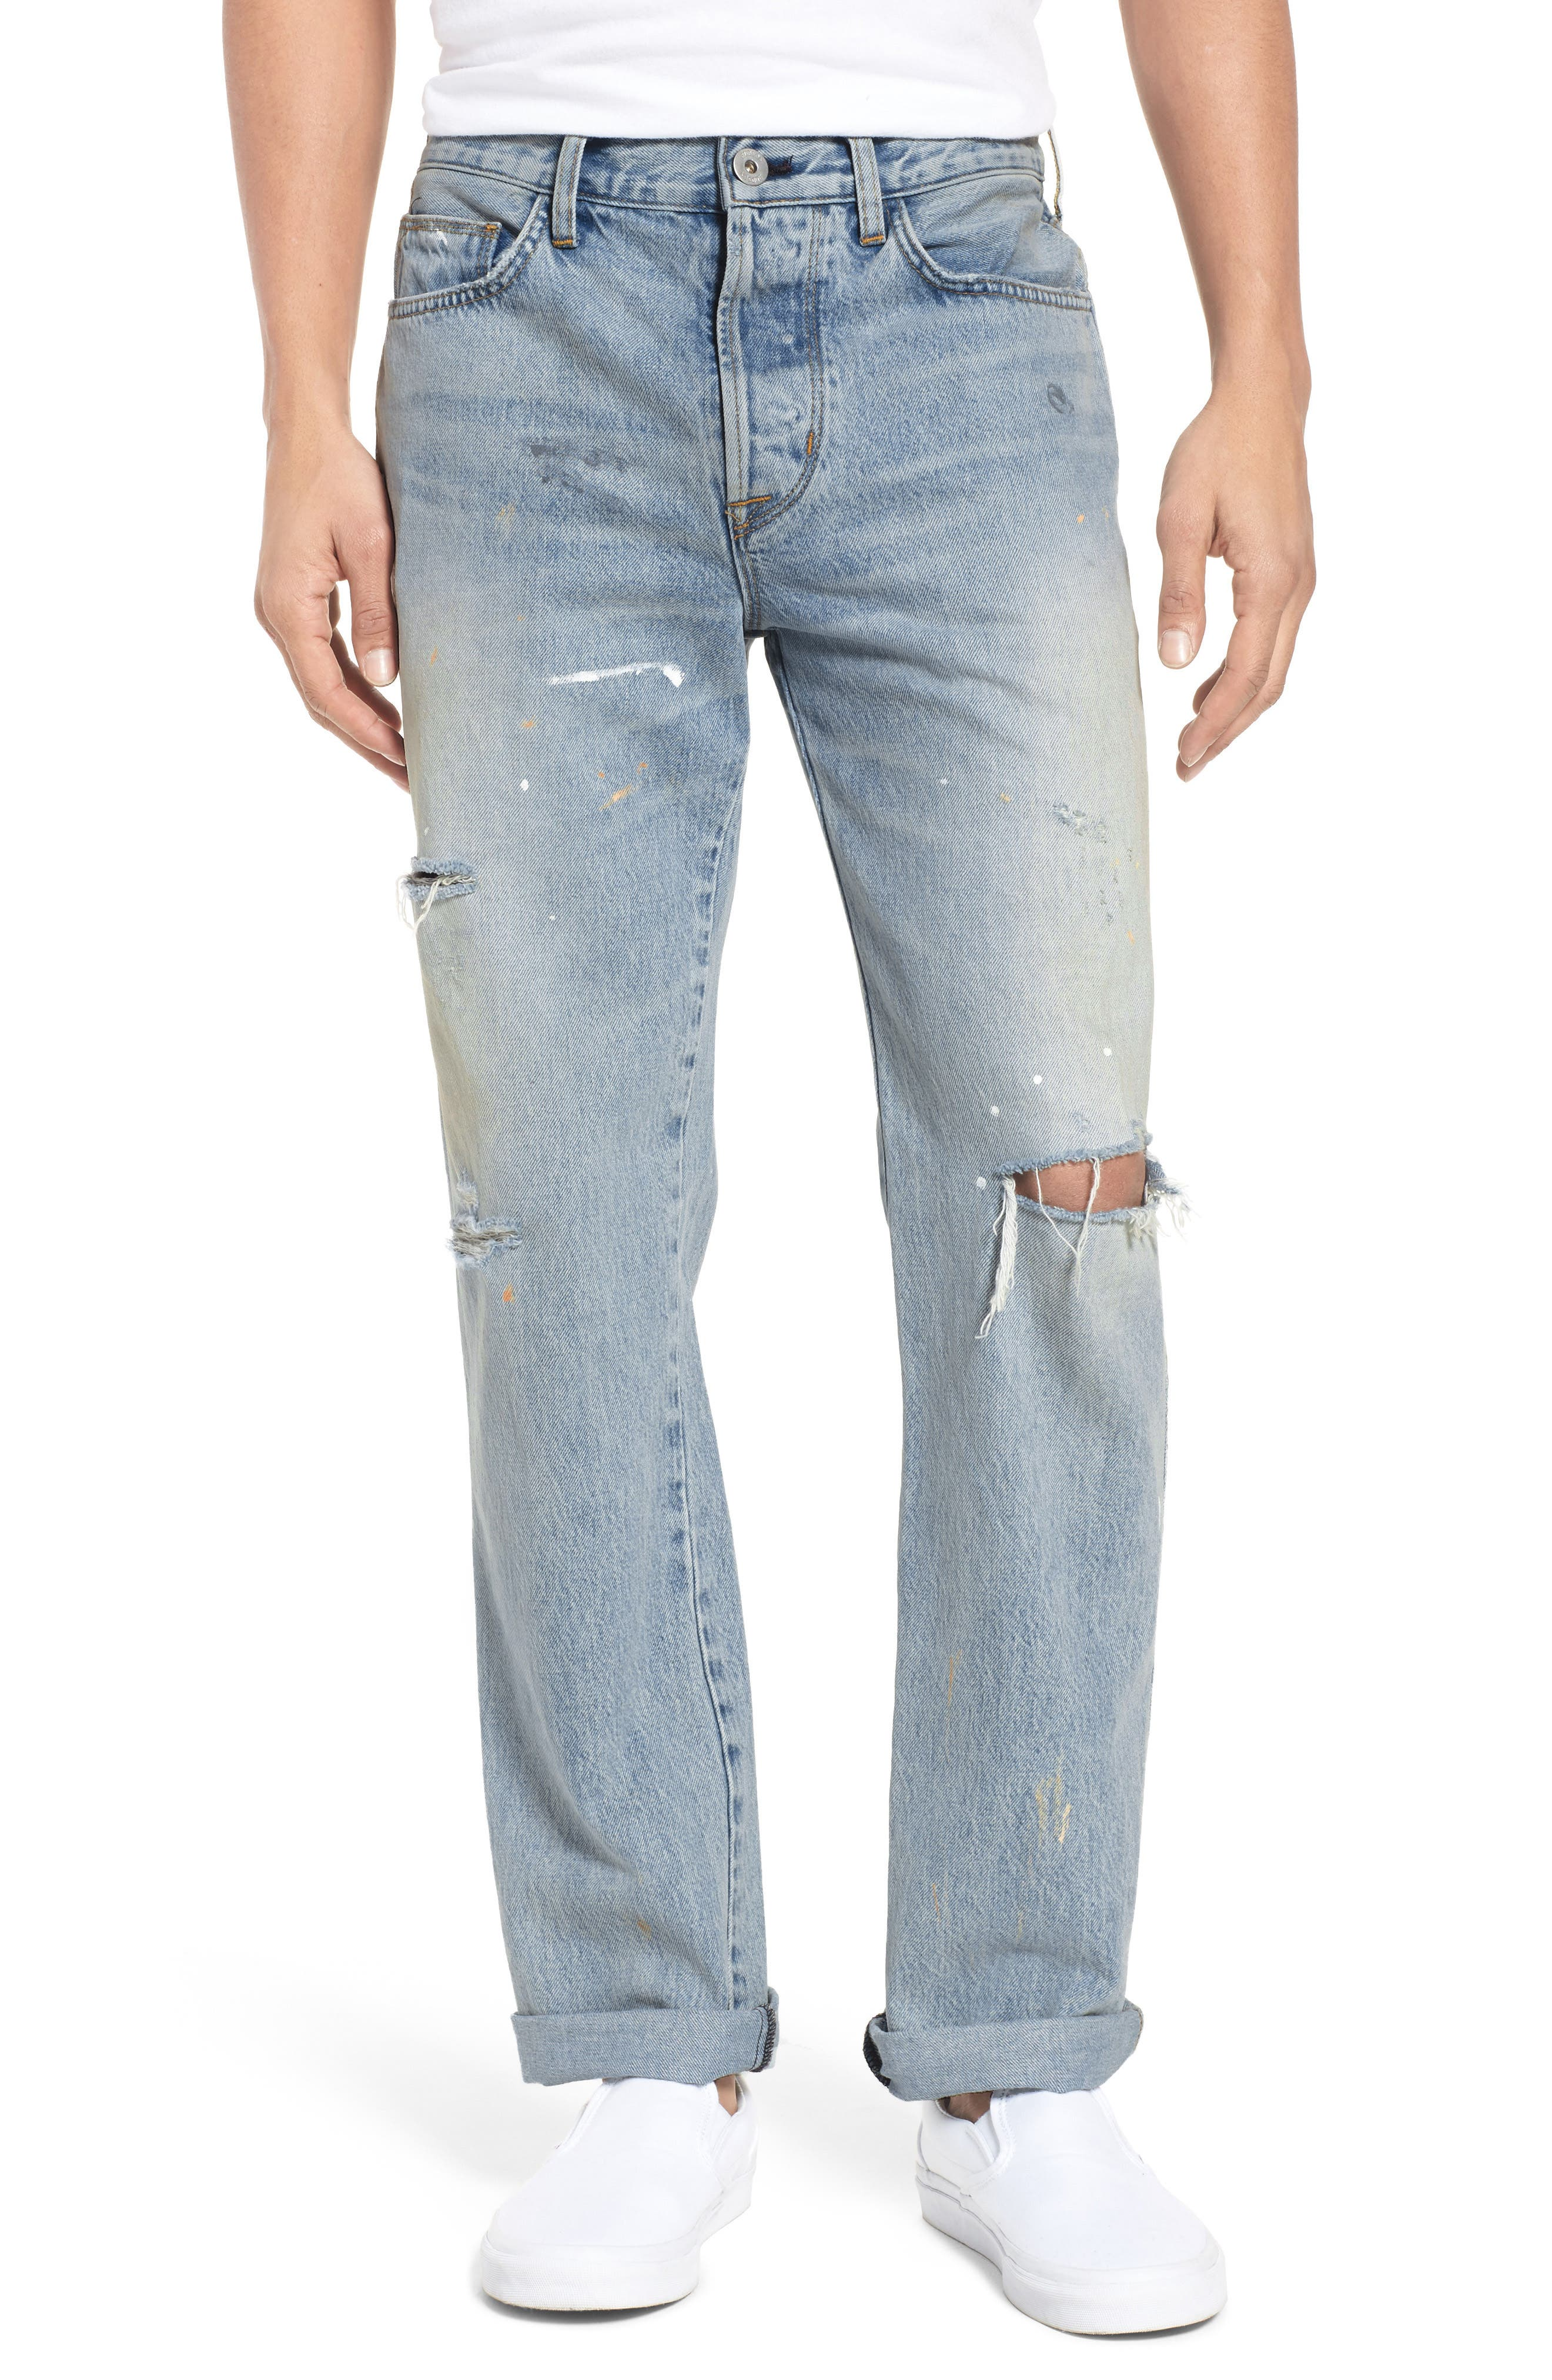 Dixon Straight Fit Jeans,                             Main thumbnail 1, color,